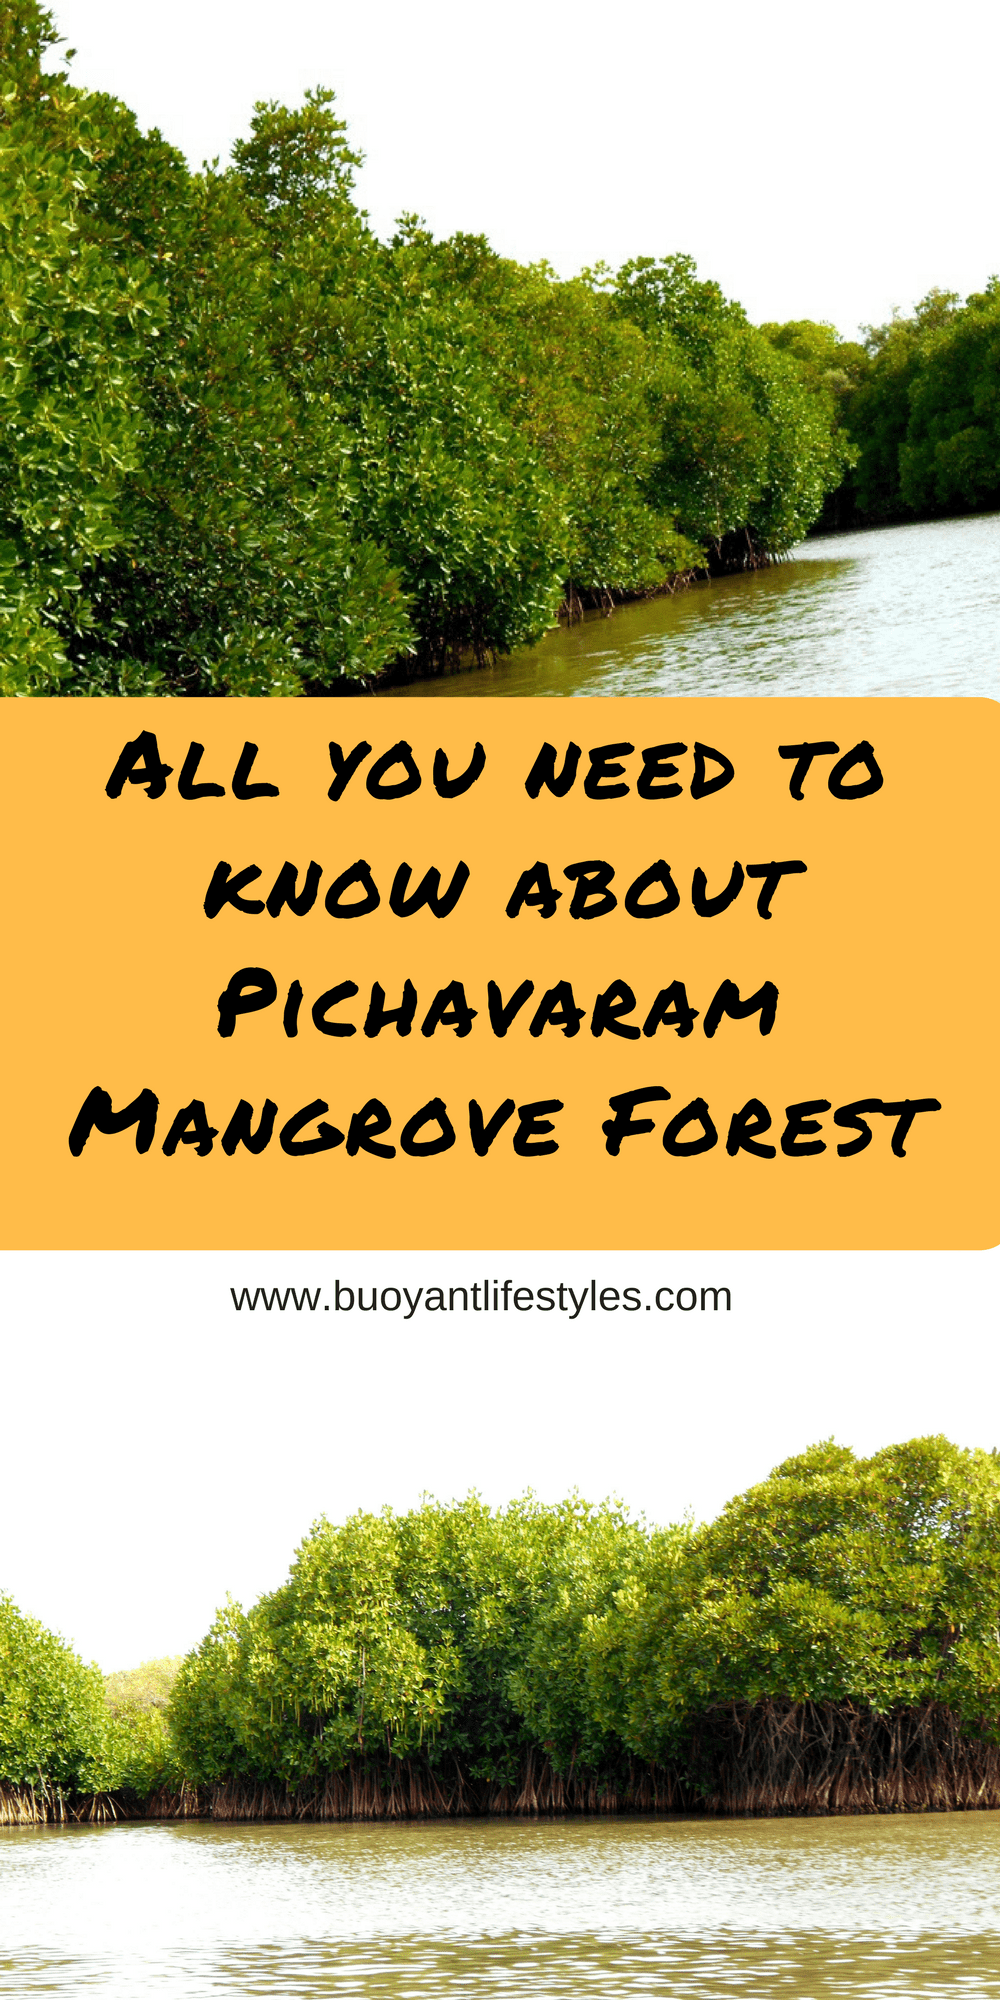 All you need to know about Pichavaram Mangrove Forest